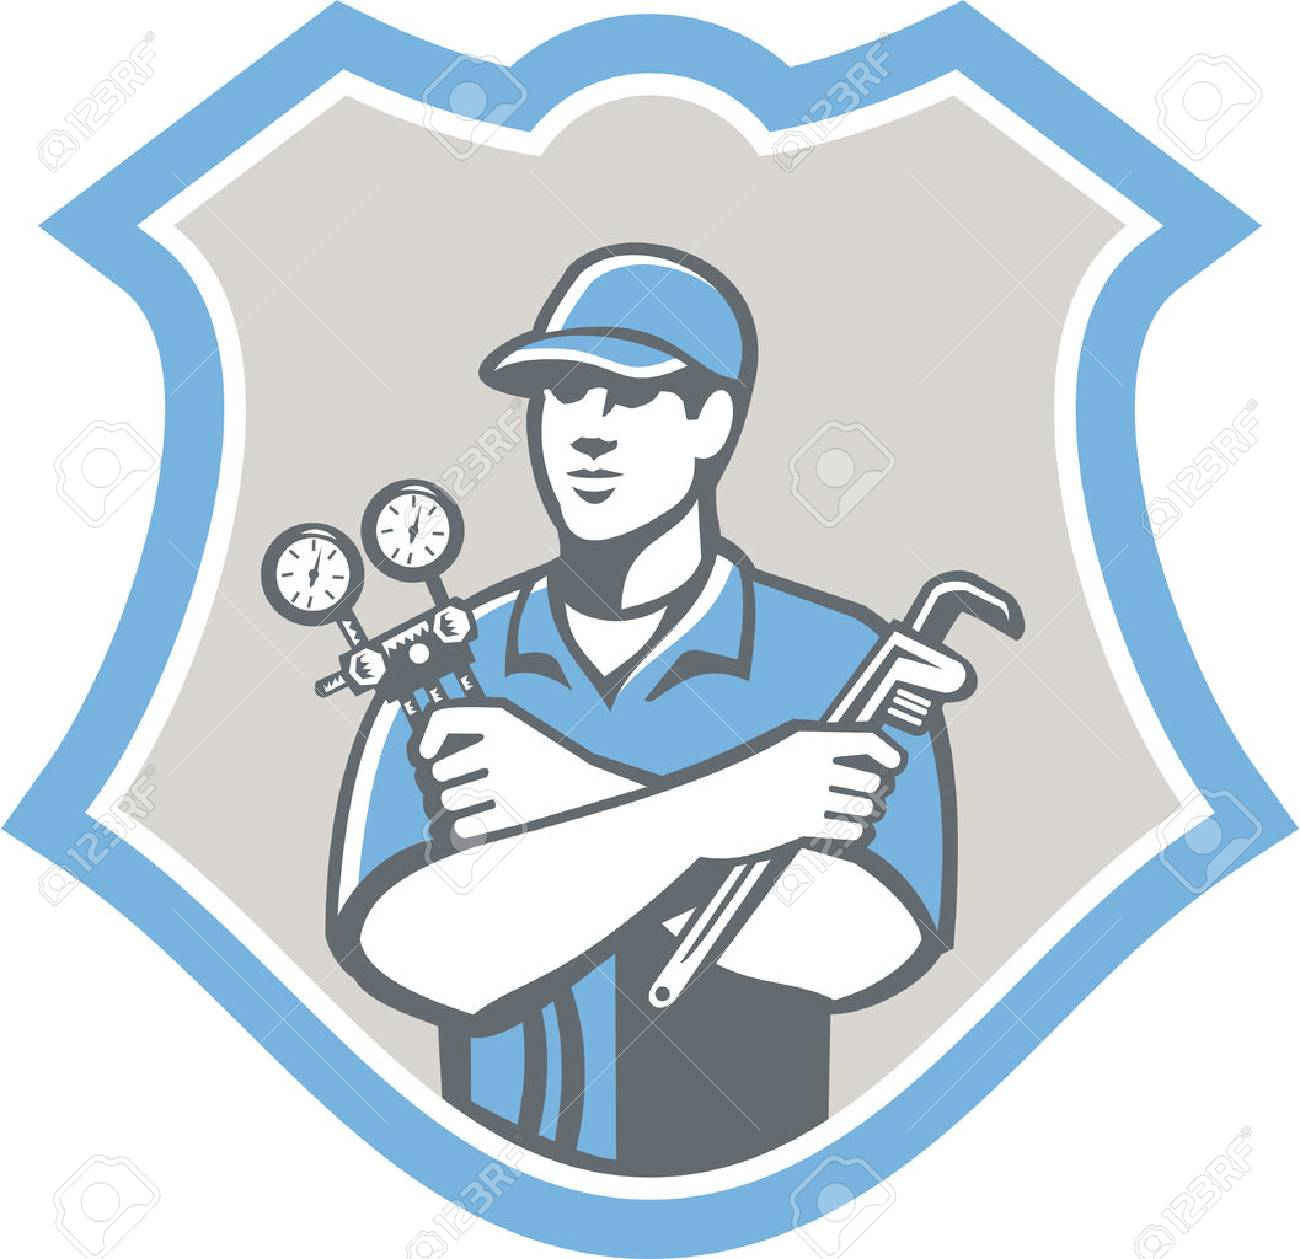 Illustration of a refrigeration and air conditioning mechanic holding a pressure temperature gauge and ac manifold wrench front view set inside shield on isolated on background done in retro style - 26919352